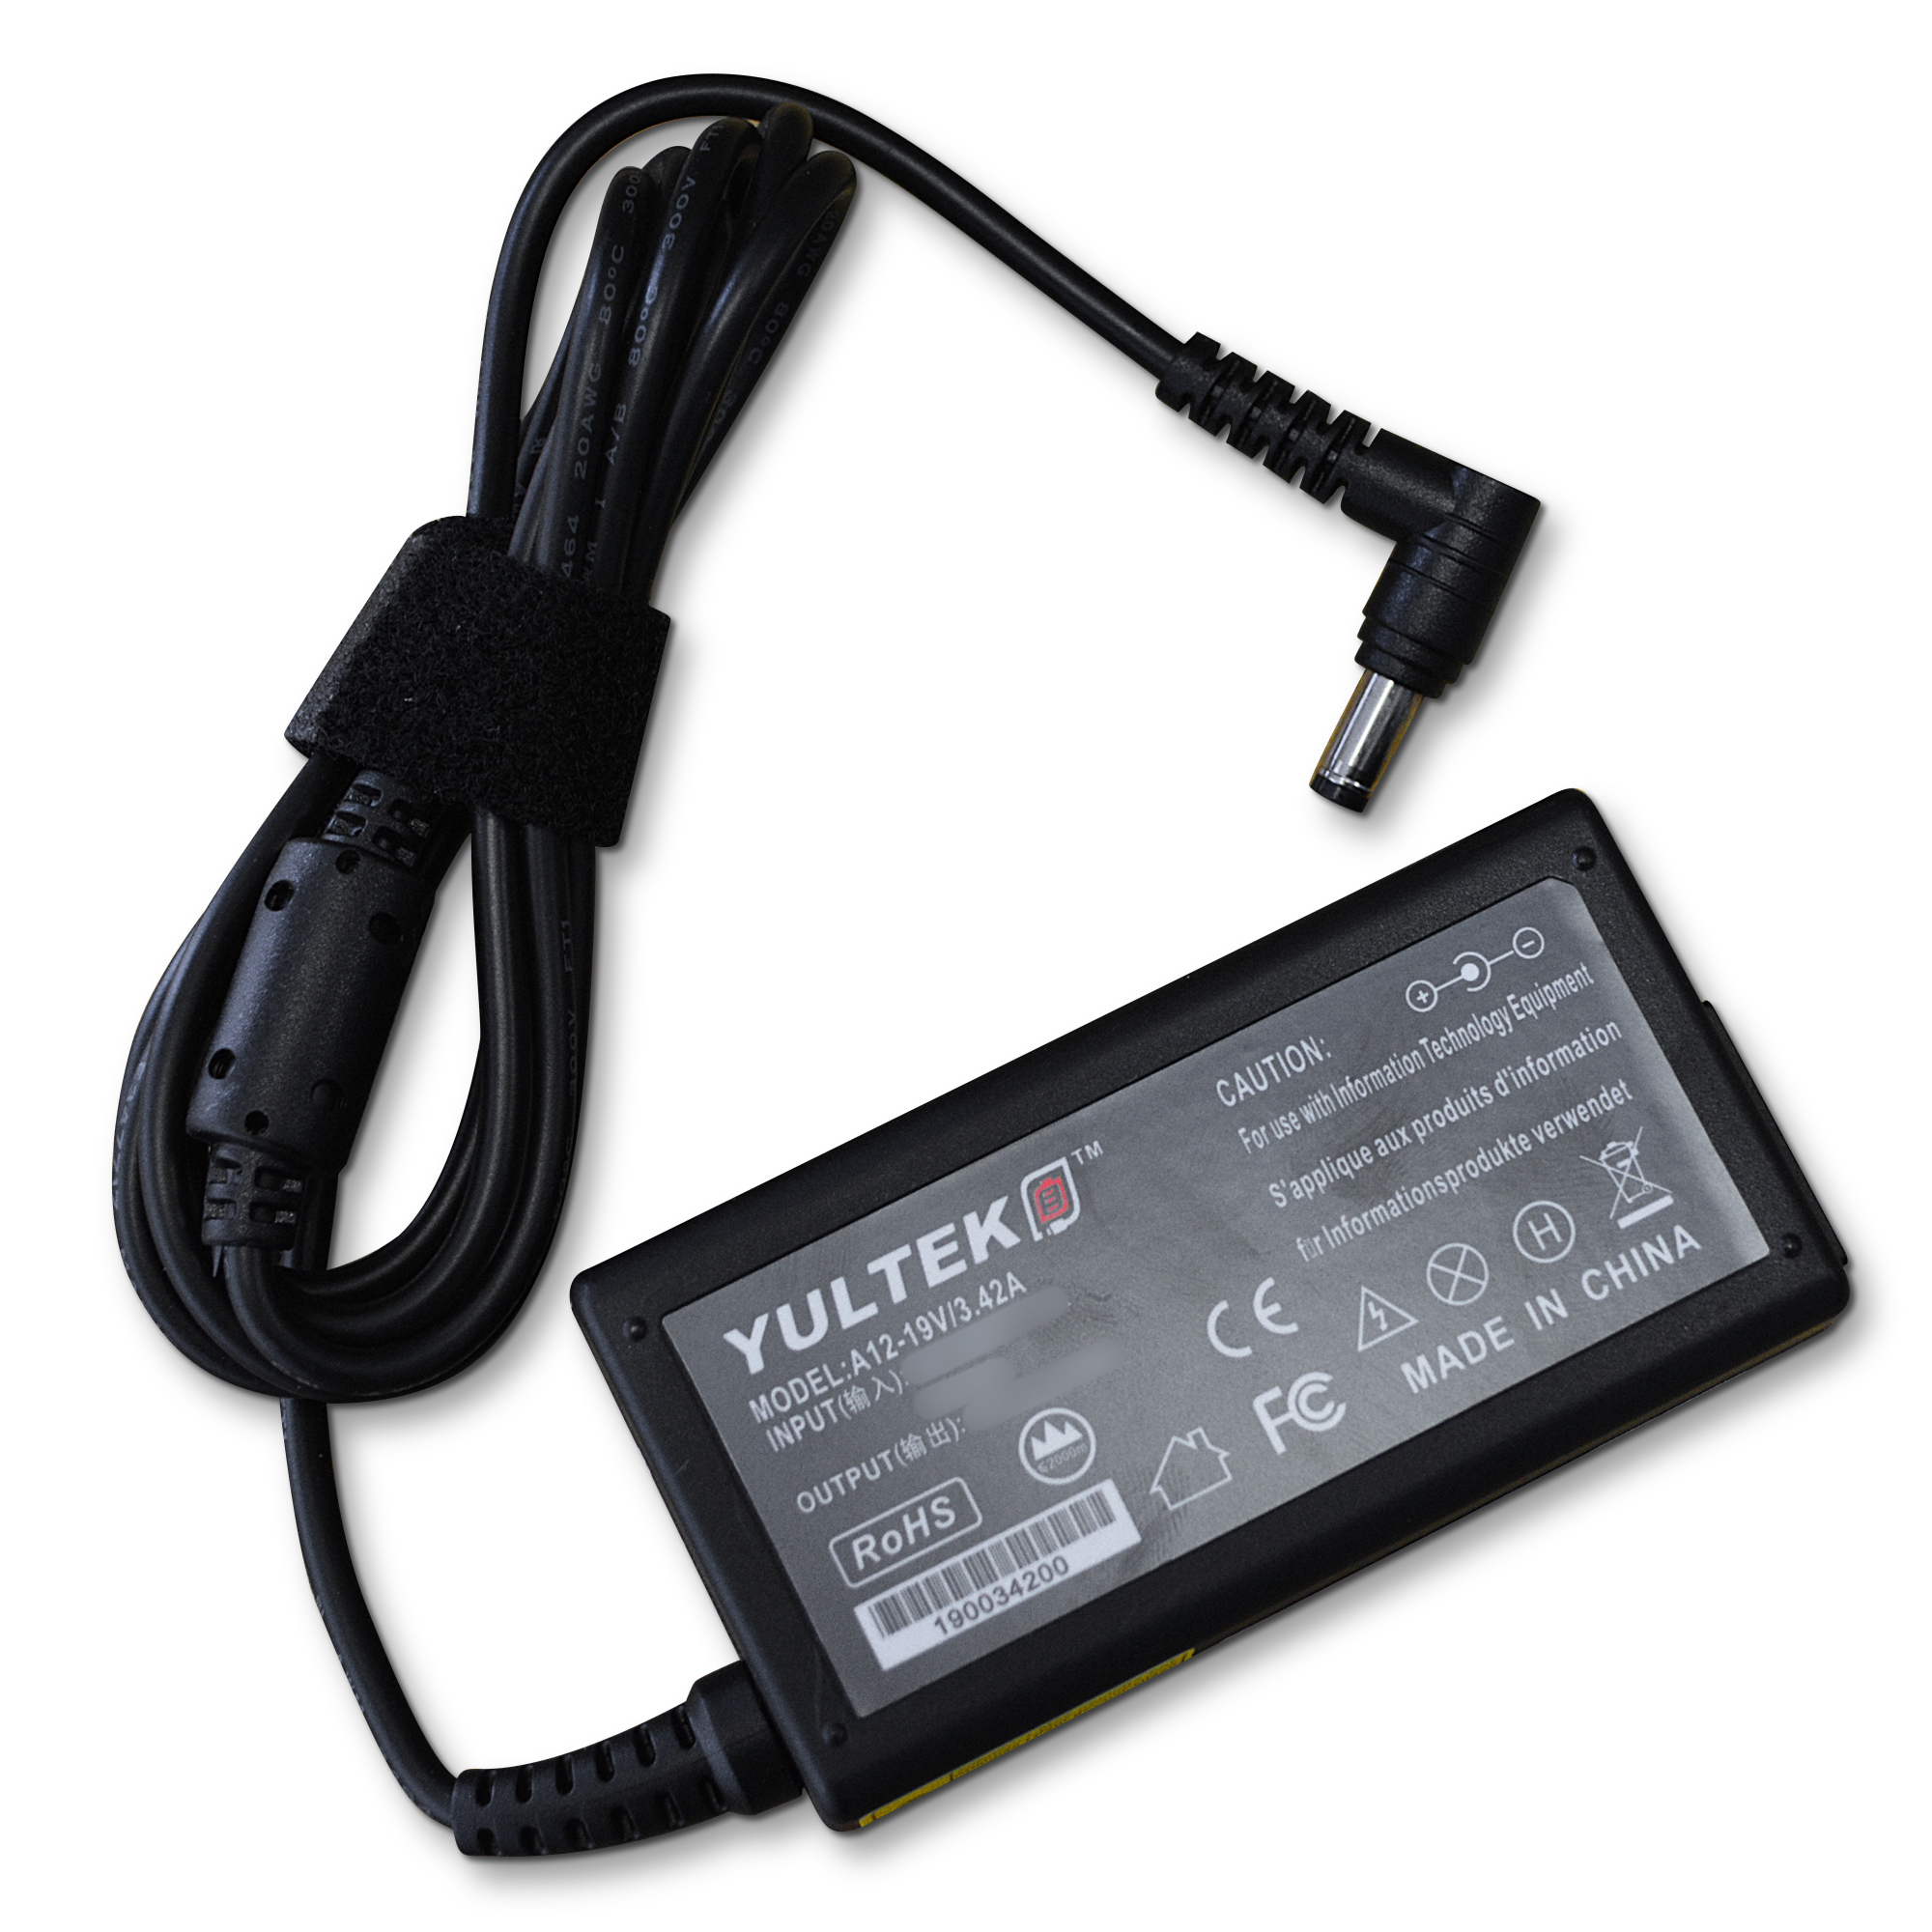 Fujitsu-Siemens Part Number WTS:25.10180.031 Laptop Charger